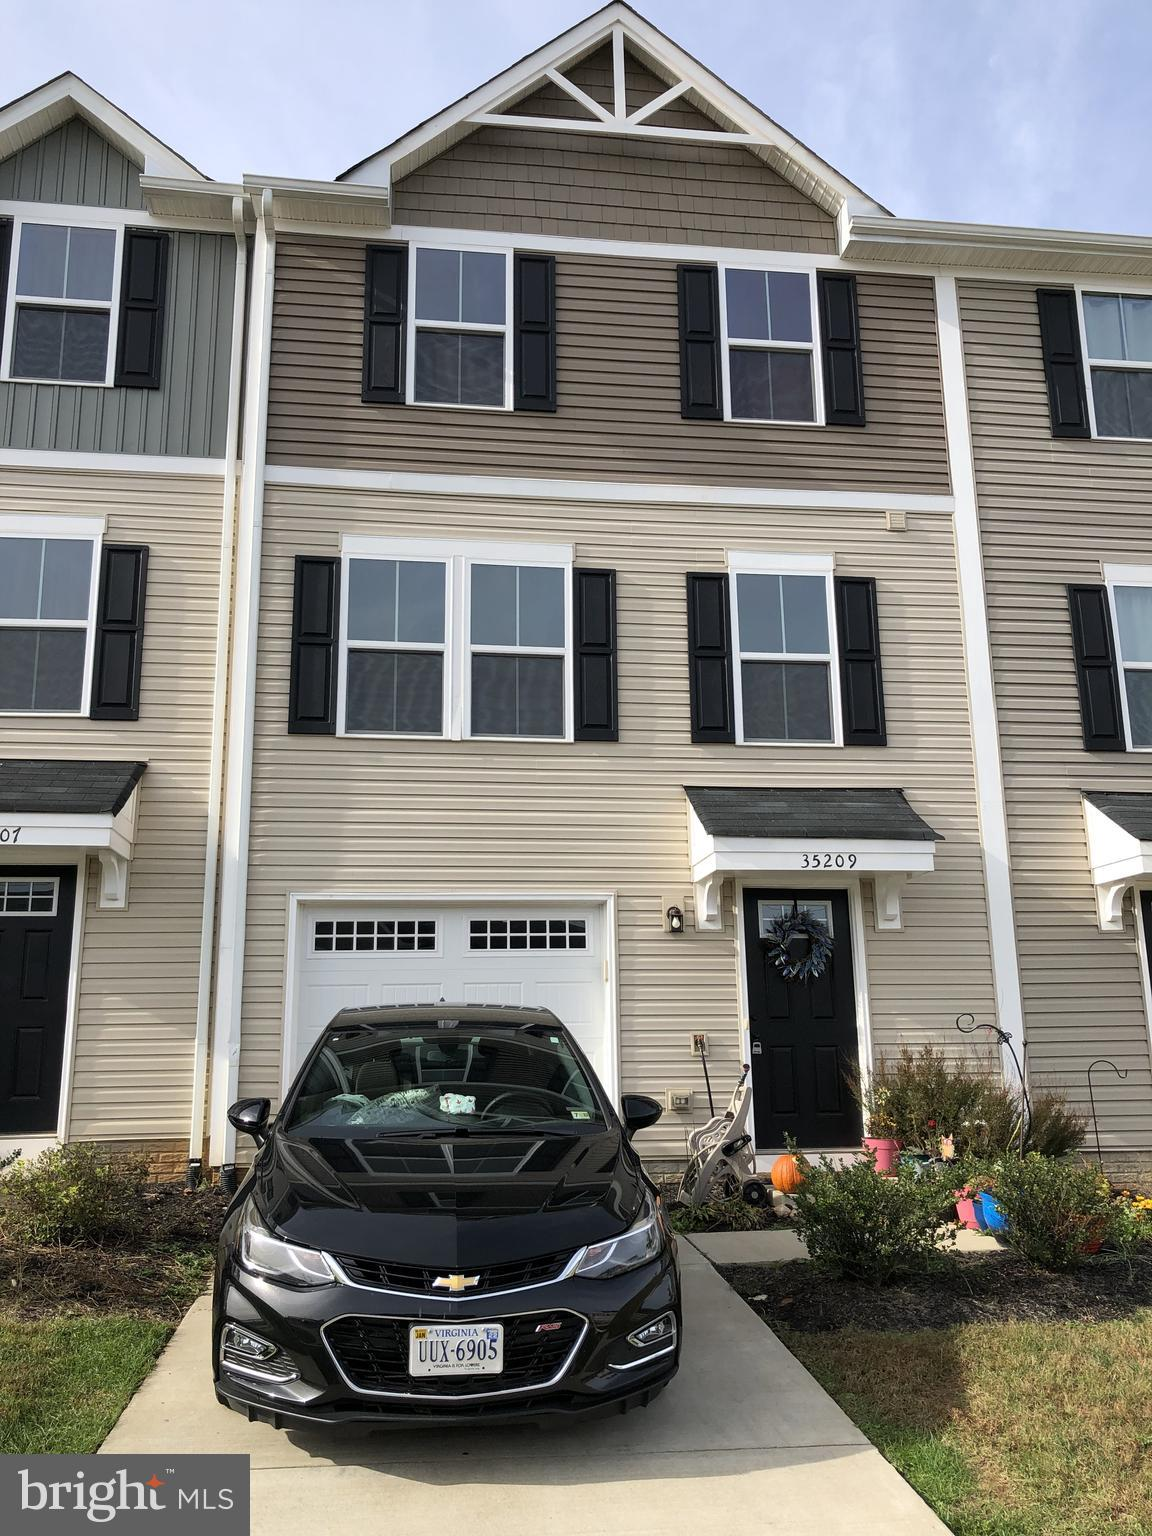 Well-maintained 2 story townhouse with a basement -- fenced backyard & 1 car garage